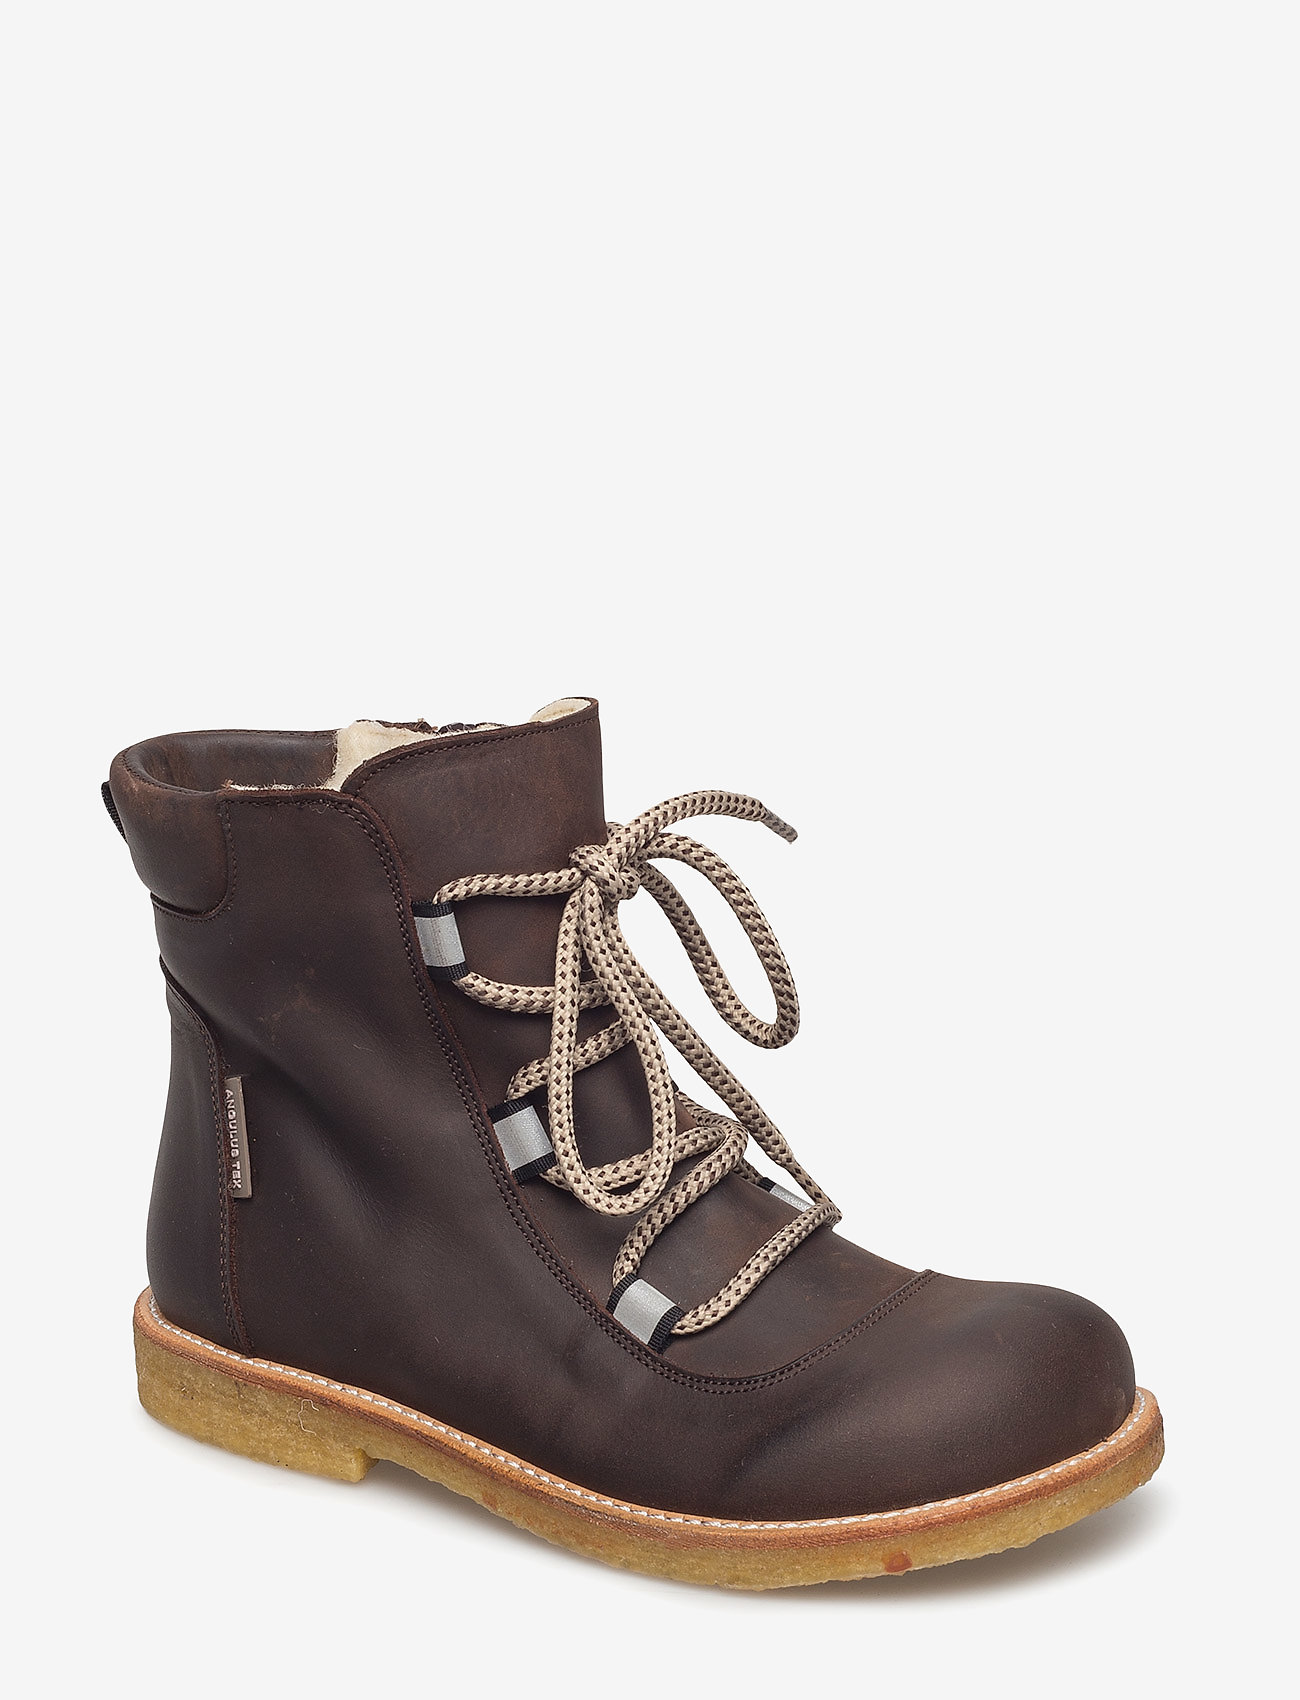 ANGULUS - Boots - flat - with velcro - boots - 1660/1660/2022 dark brown/refl